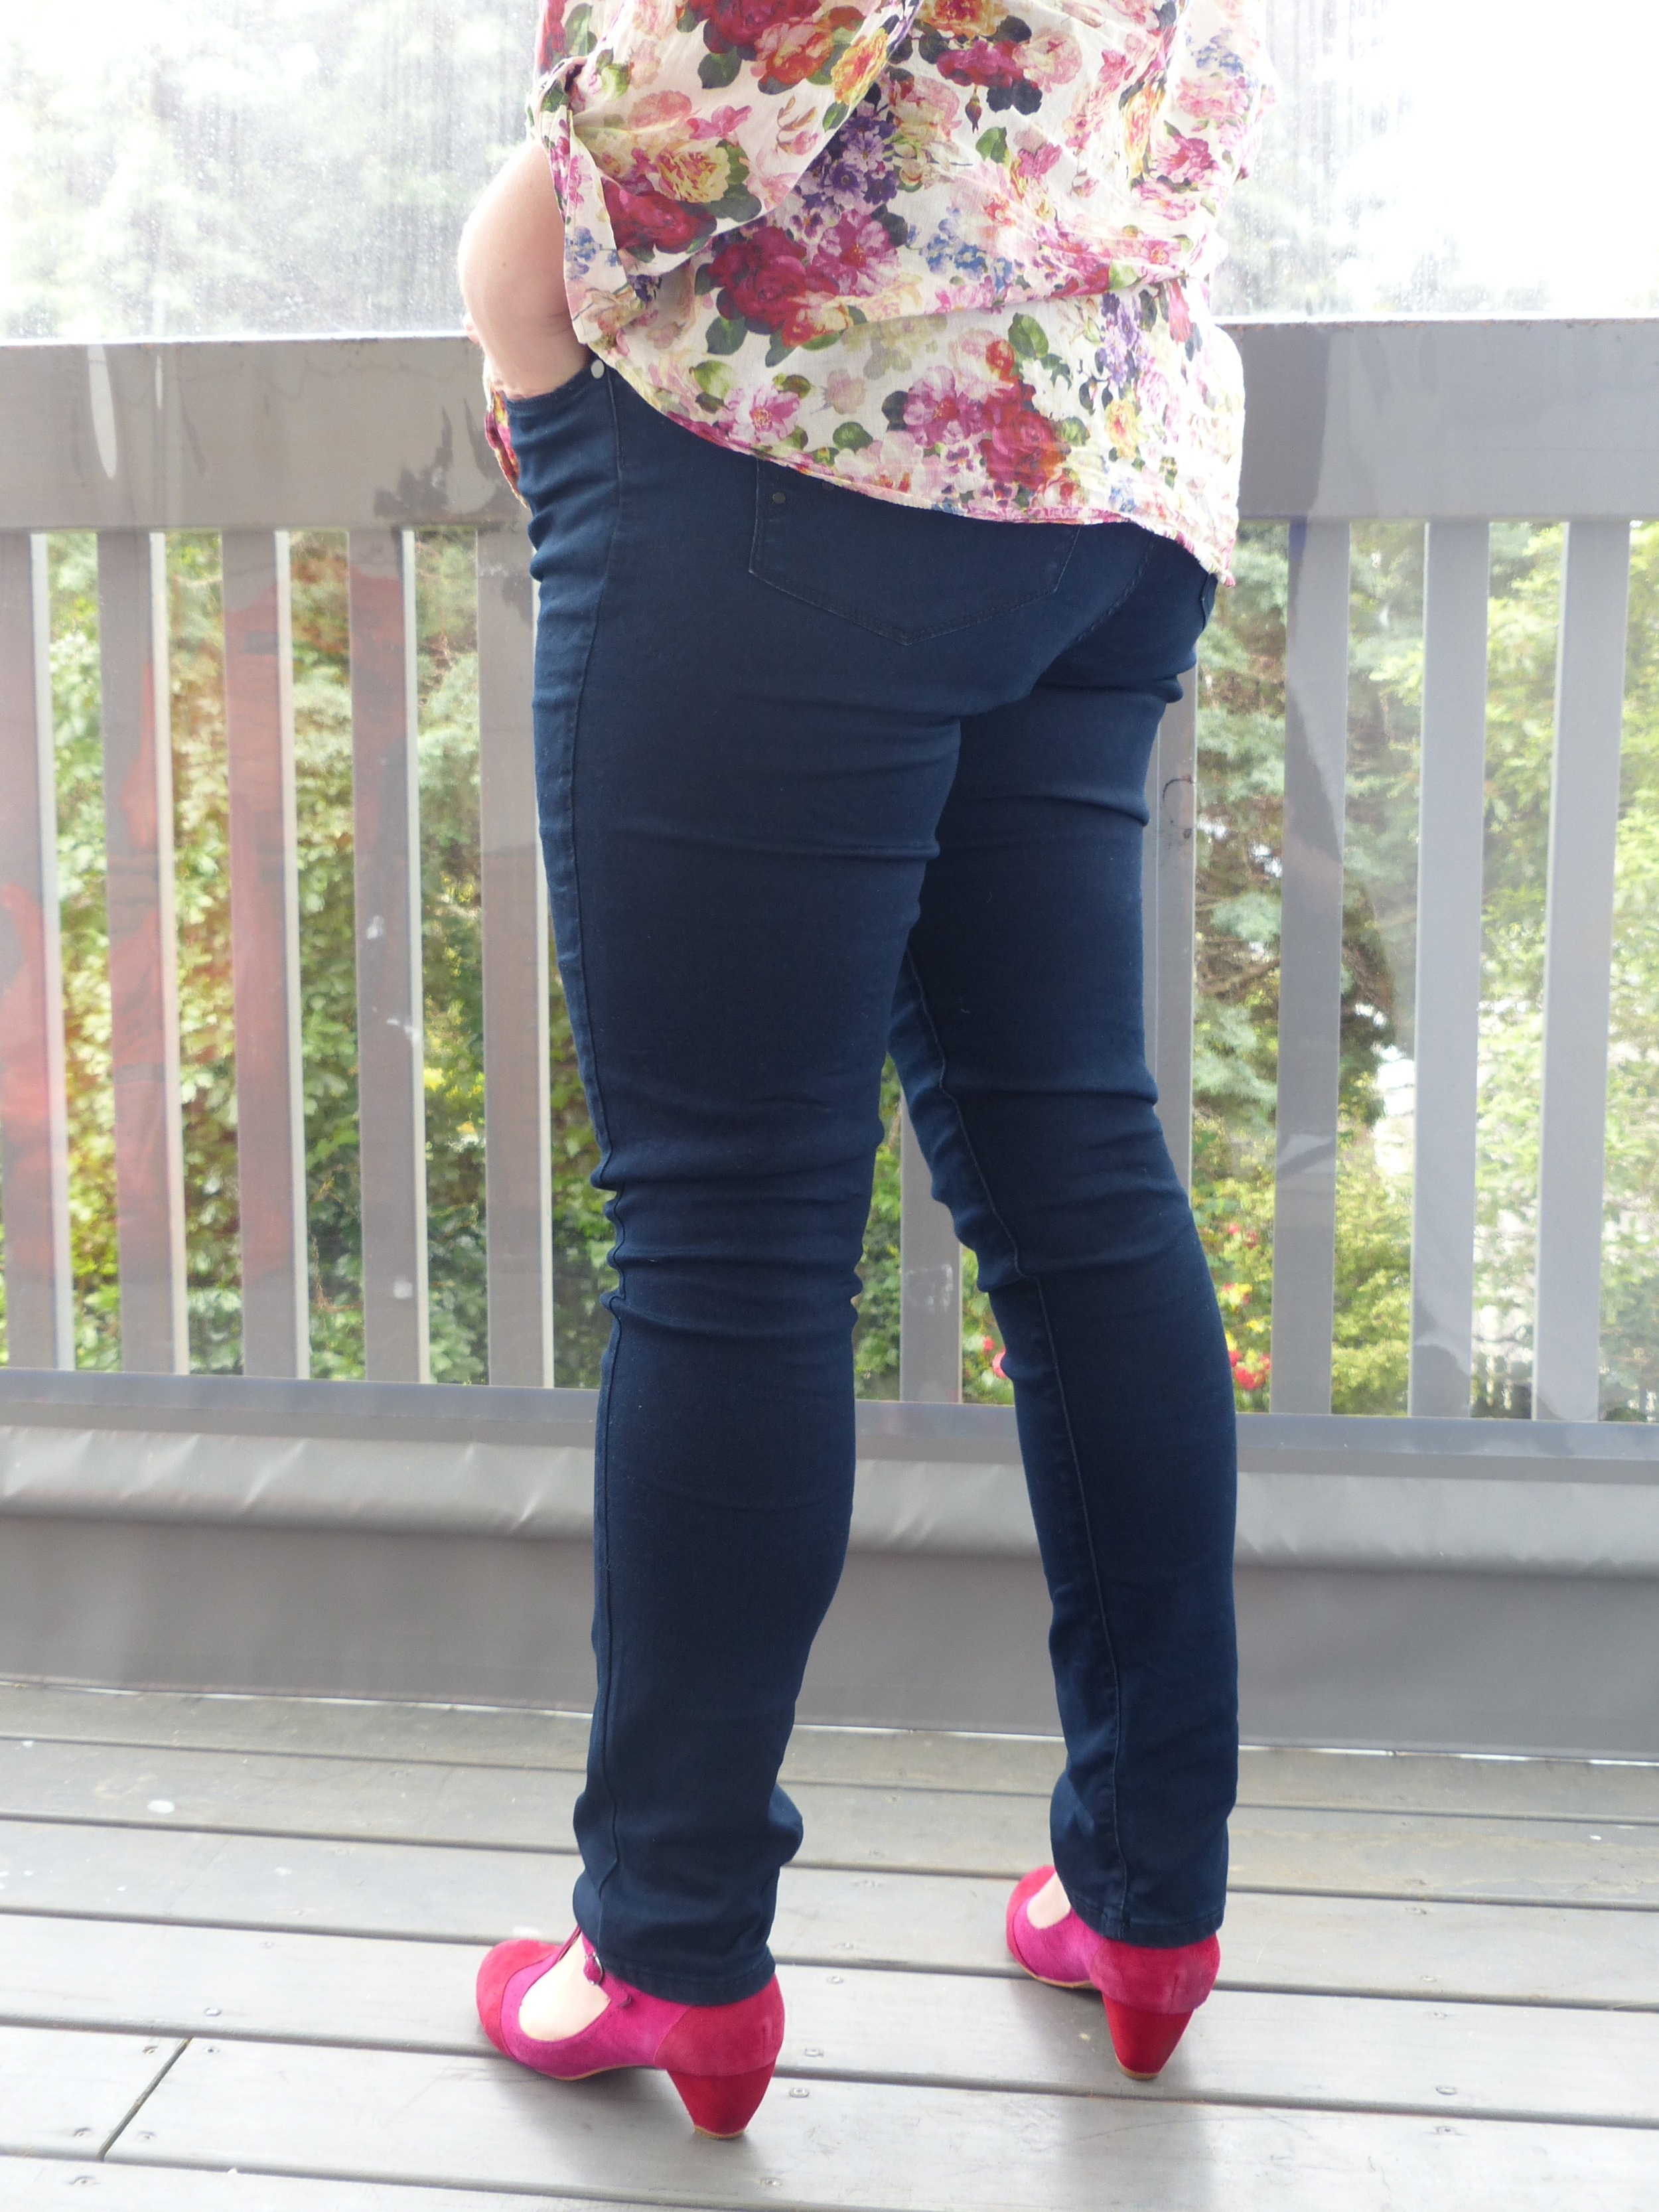 I love these jeans so much I am showing you my bum!